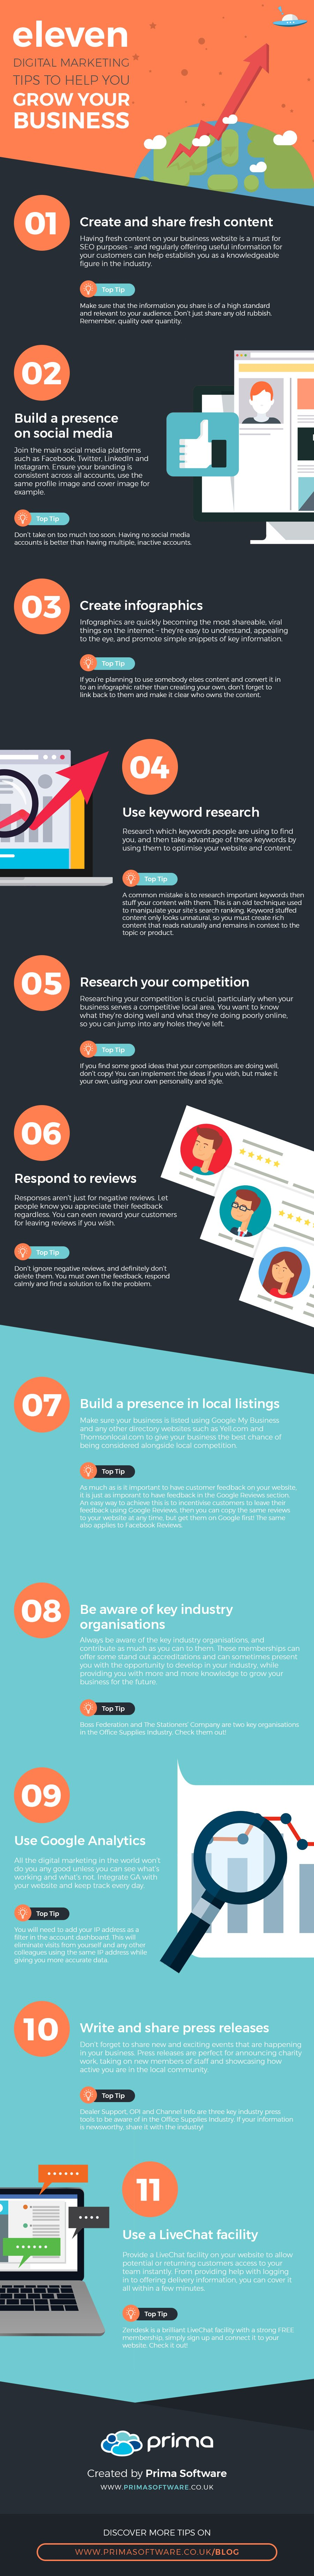 11 Digital Marketing Tips to Help You Grow Your Business [Infographic]   Social Media Today